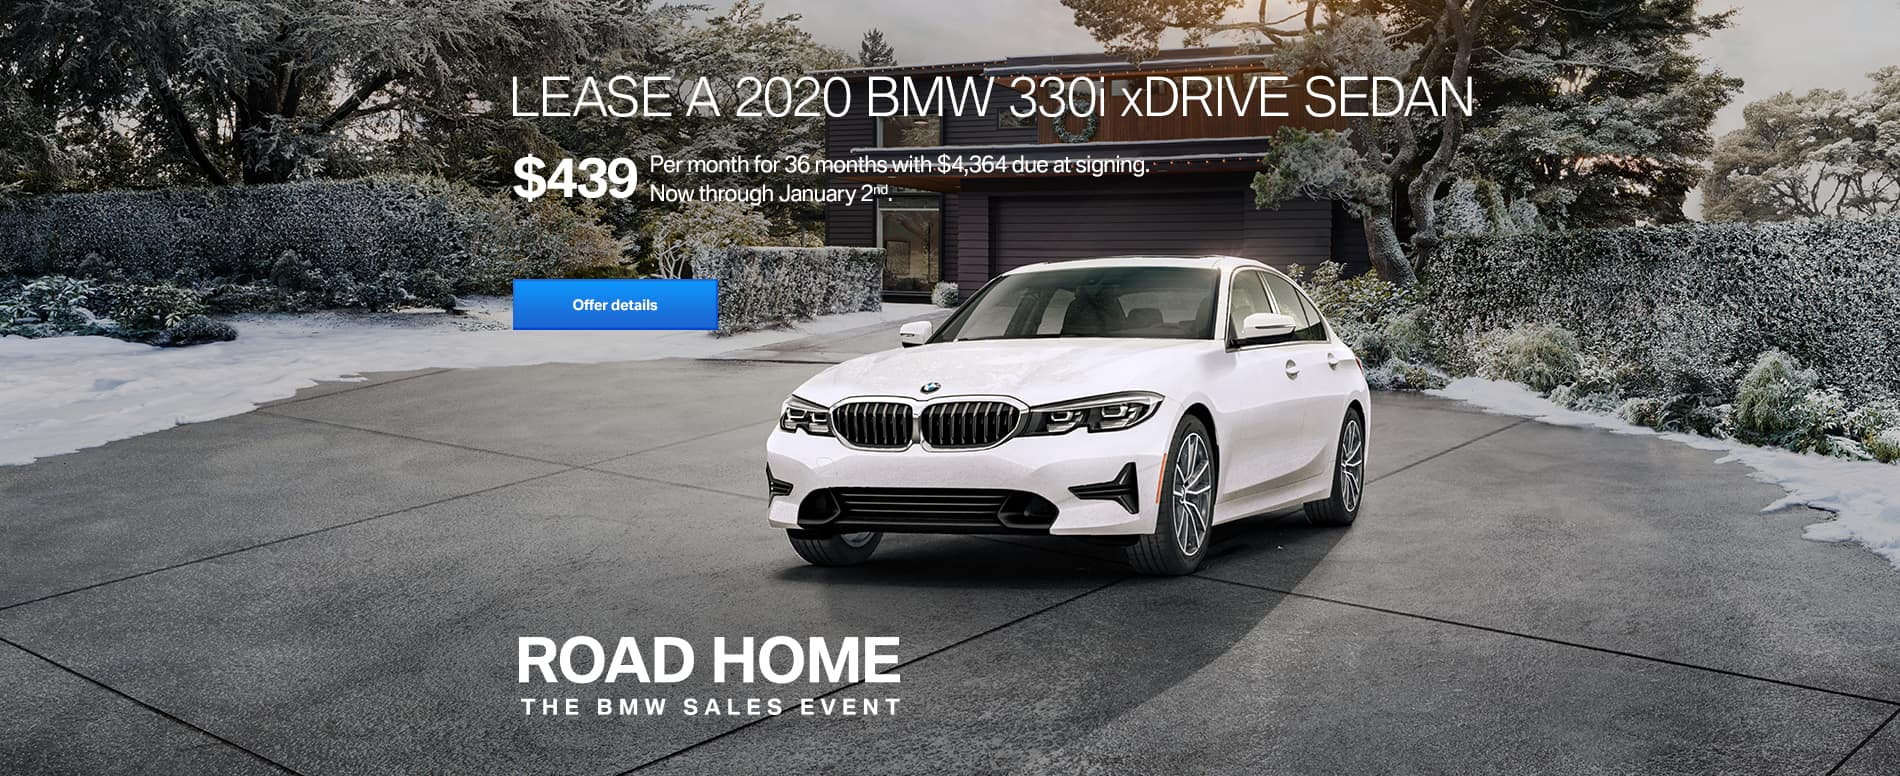 FMA4_DEC_PUSH_2020_BMW_330i_xDrive_439